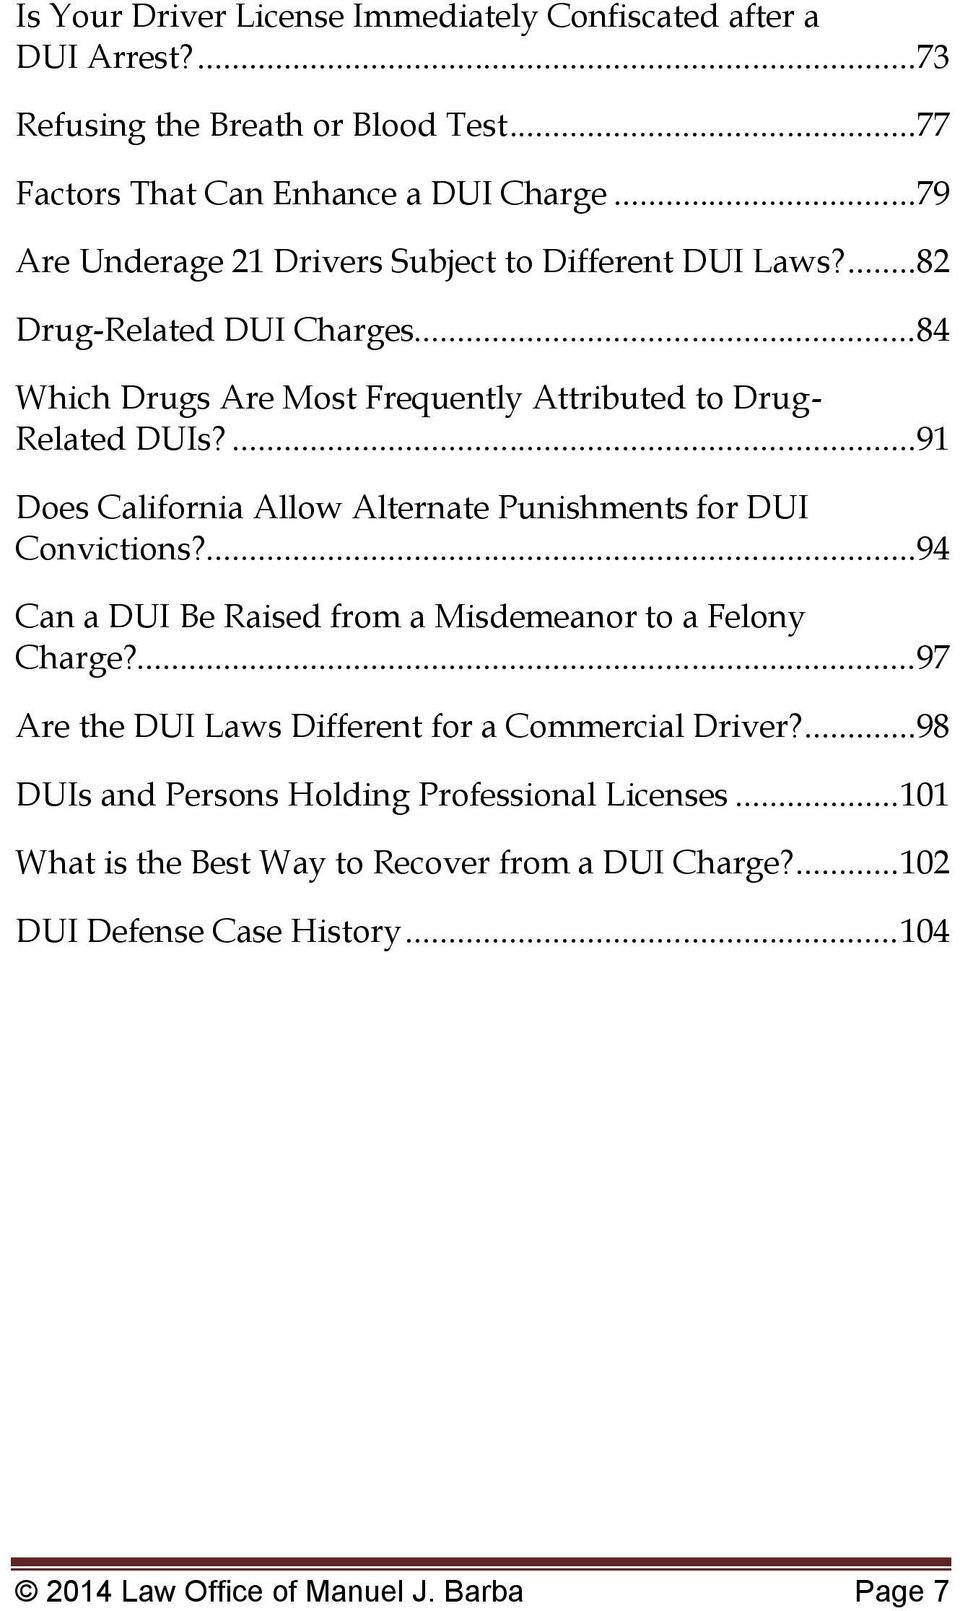 ...91 Does California Allow Alternate Punishments for DUI Convictions?...94 Can a DUI Be Raised from a Misdemeanor to a Felony Charge?